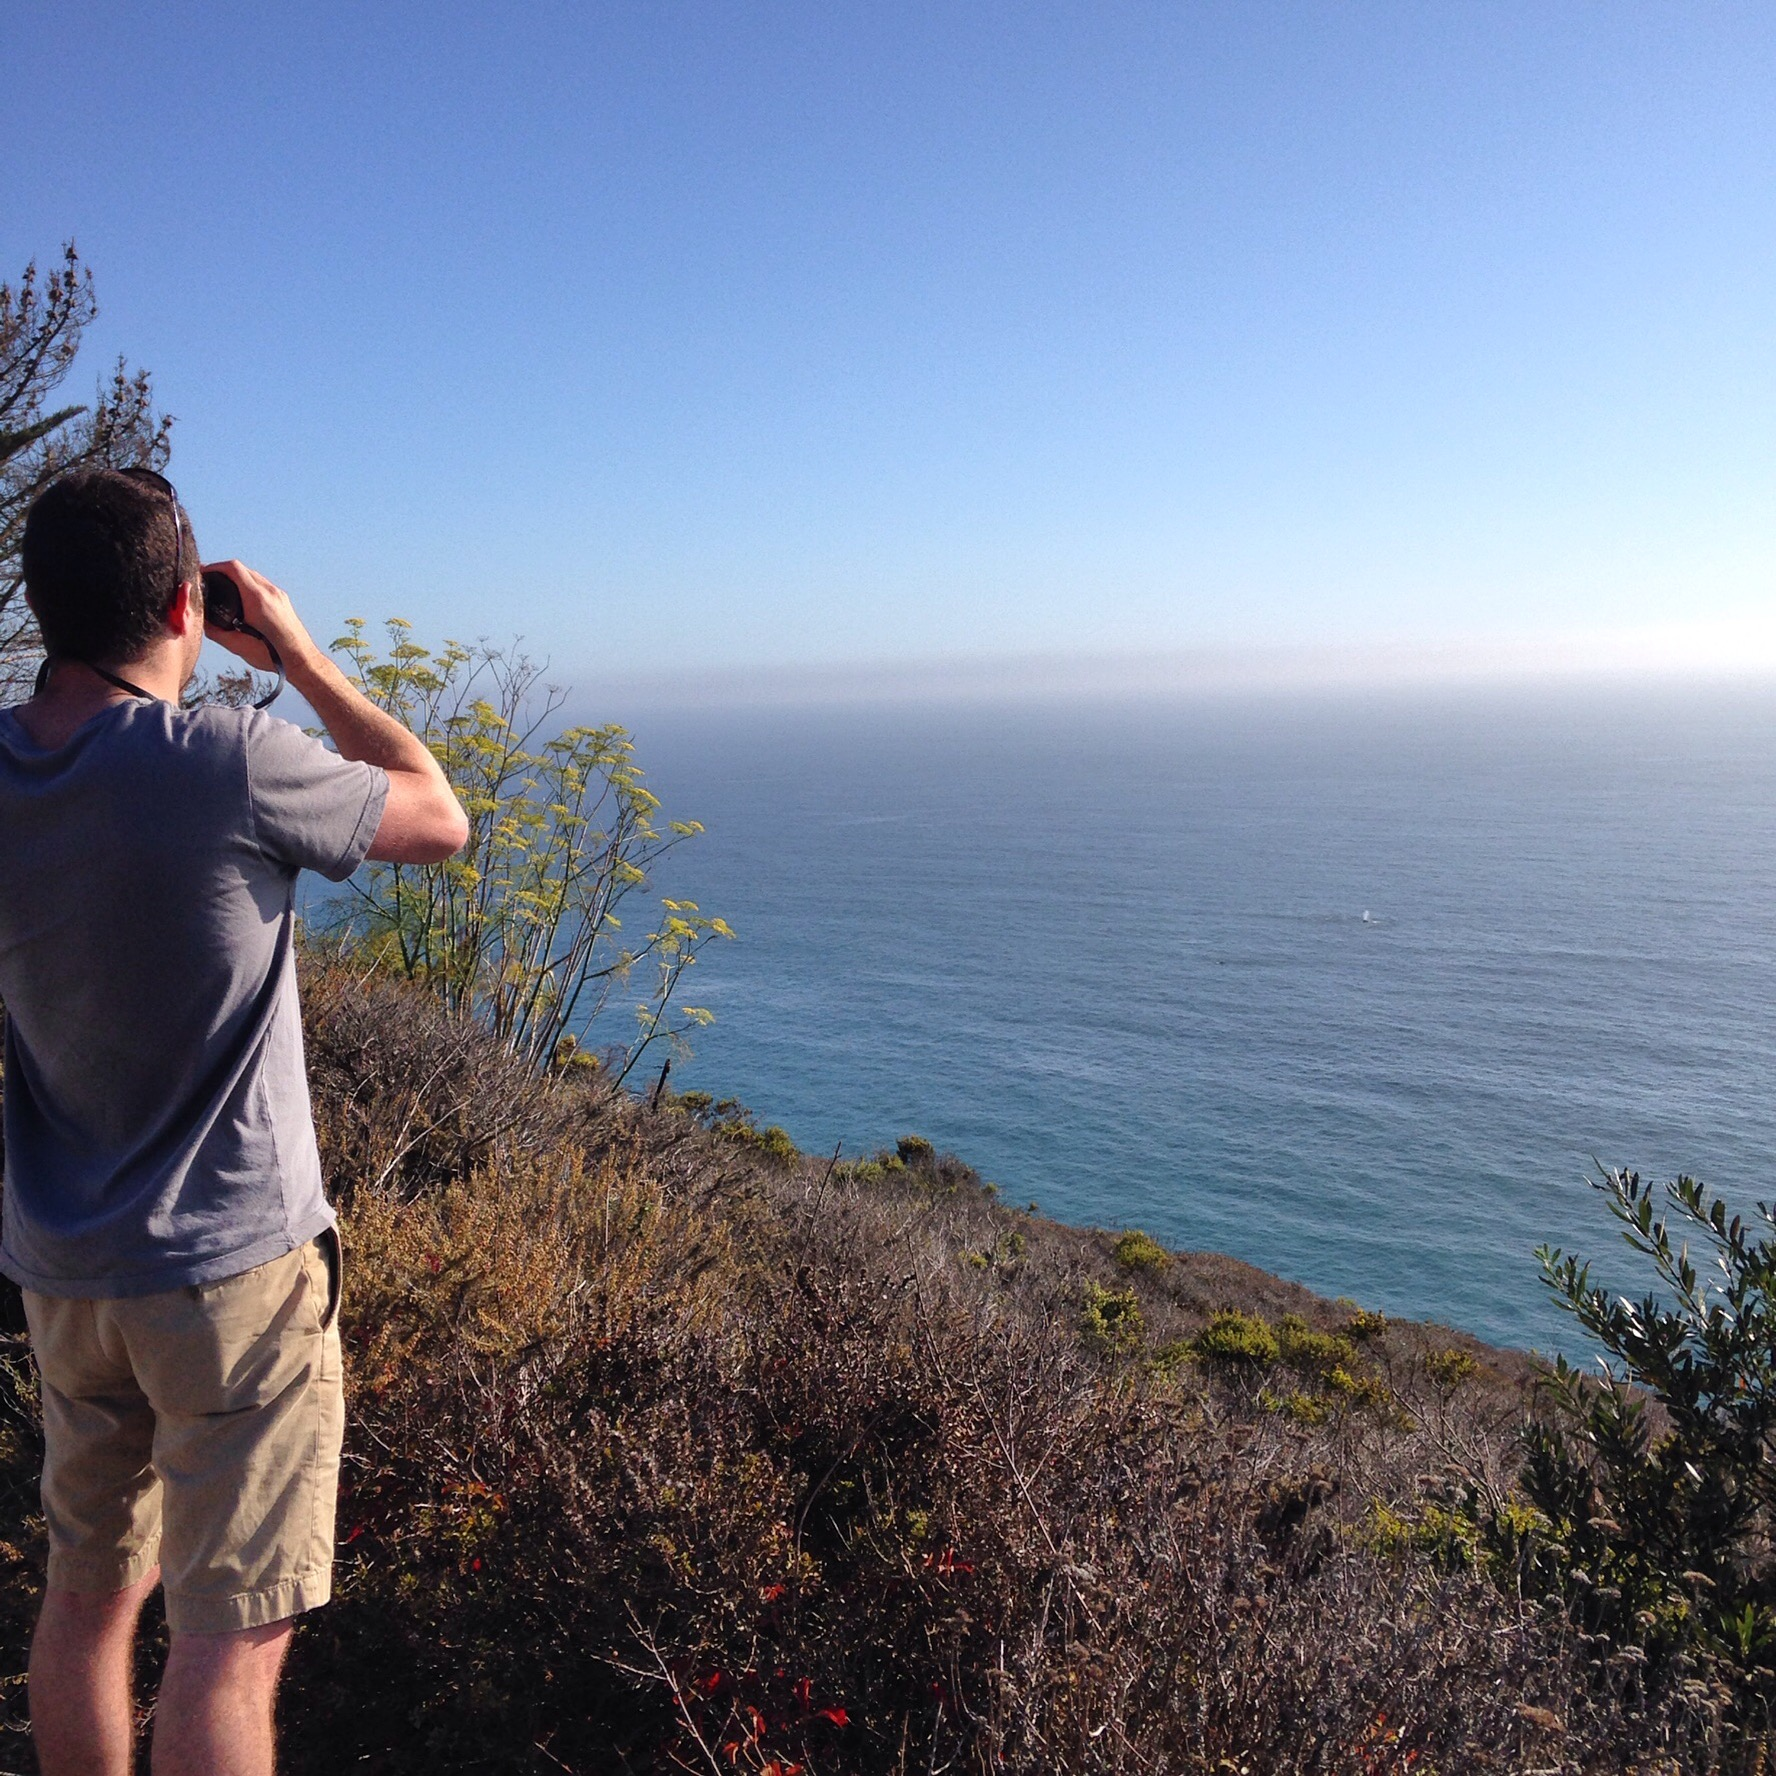 We spotted whales on a trip down the coast!  Read all about  our trip to a sleepy beach town.